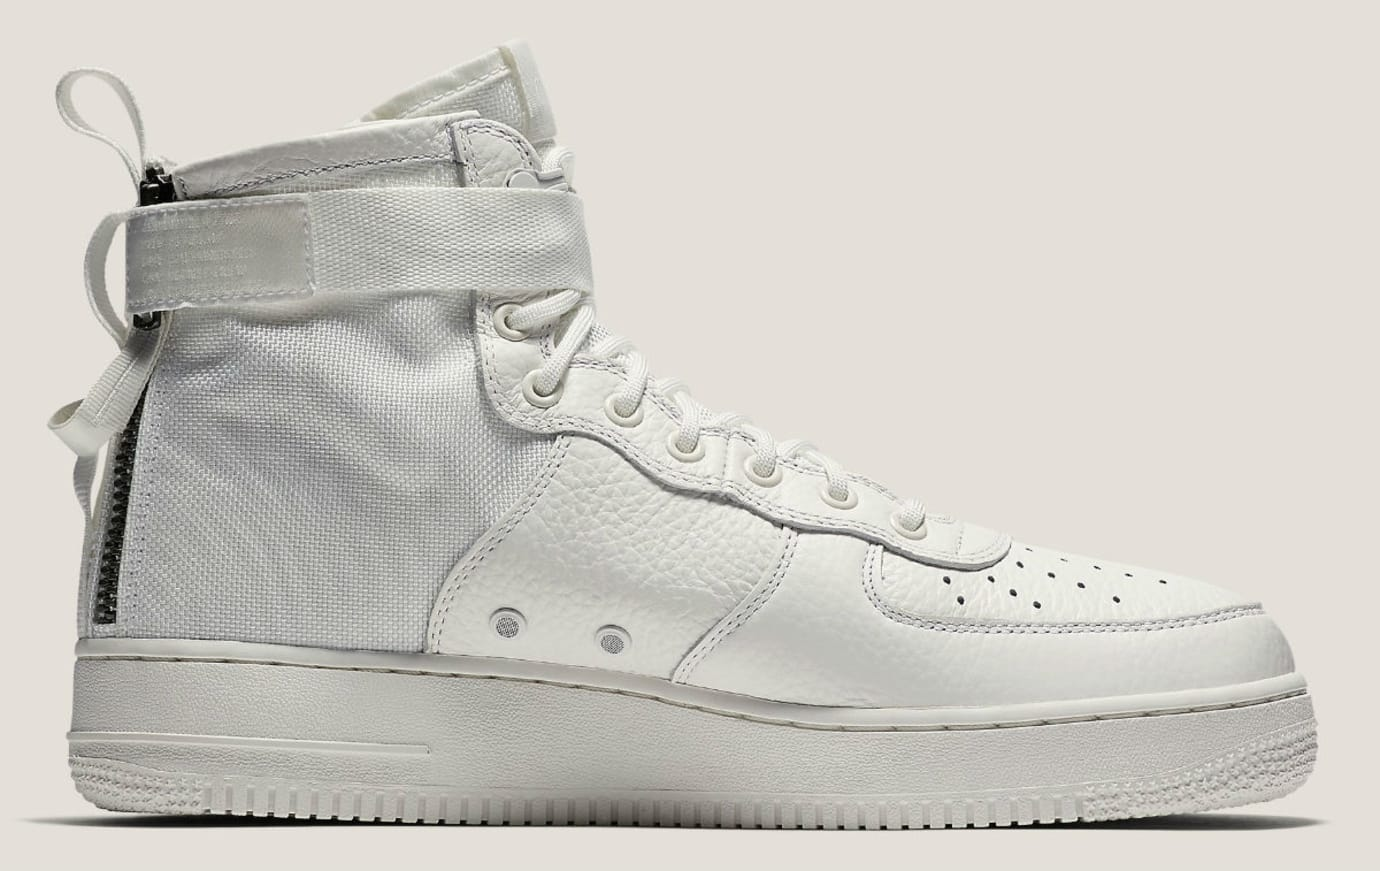 Nike Special Field Air Force 1 Mid Ivory Release Date Medial AA6655-100